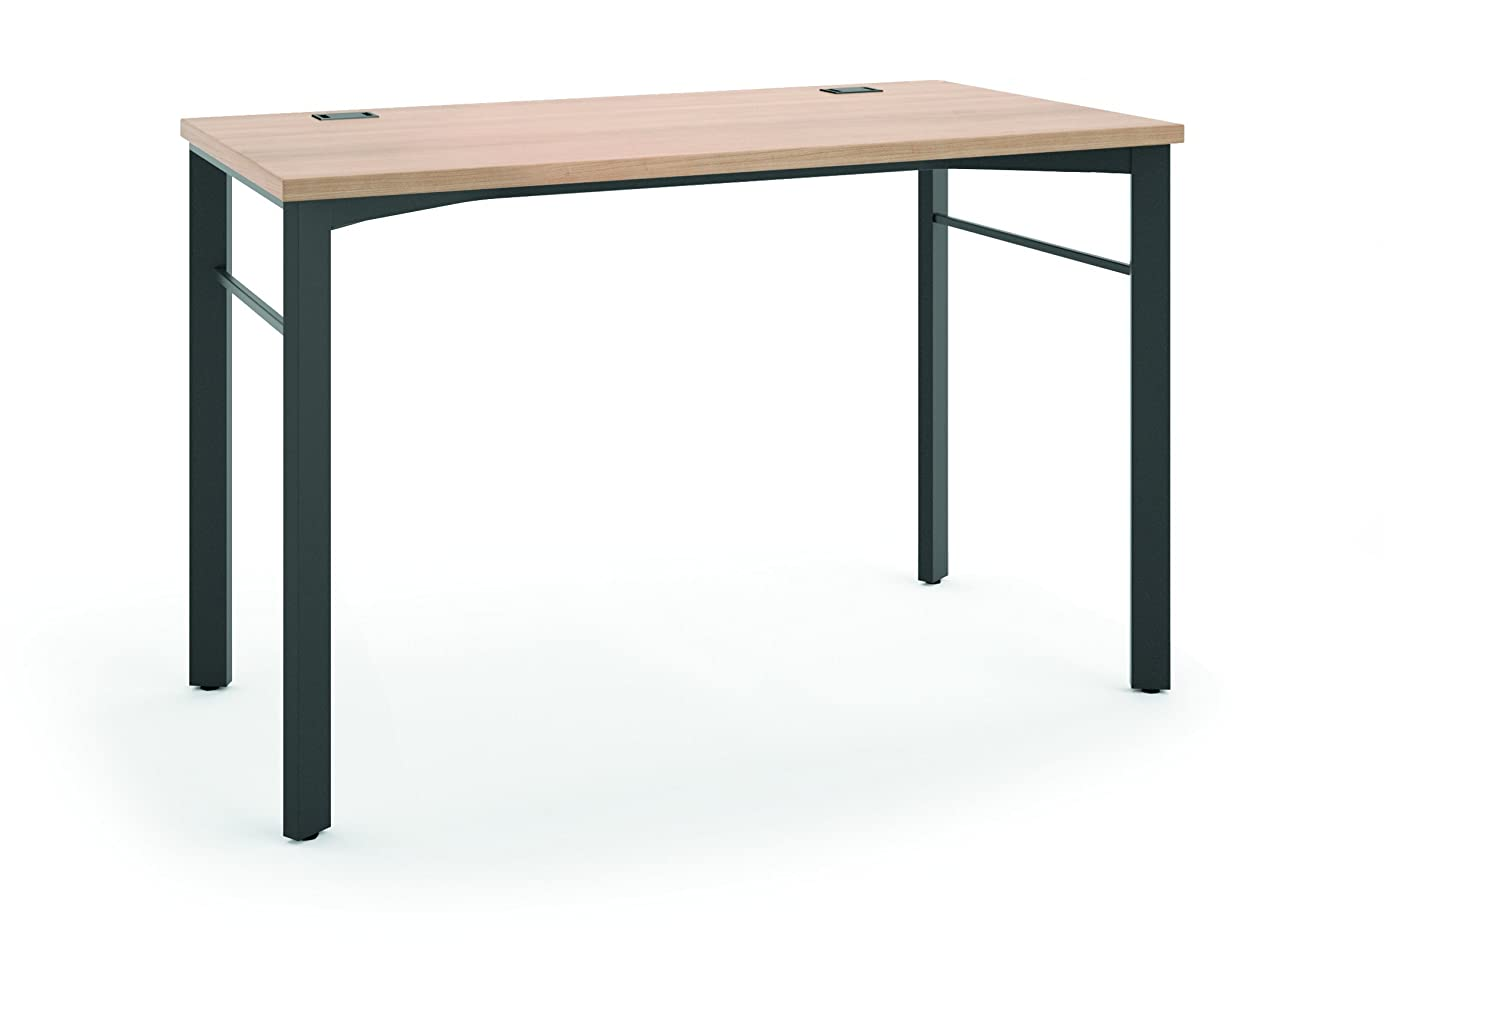 HON Manage Table Desk   Compact Work Station, 60w X 23.5d X 29.5h,  Wheat/Ash (HMNG60WKSL)